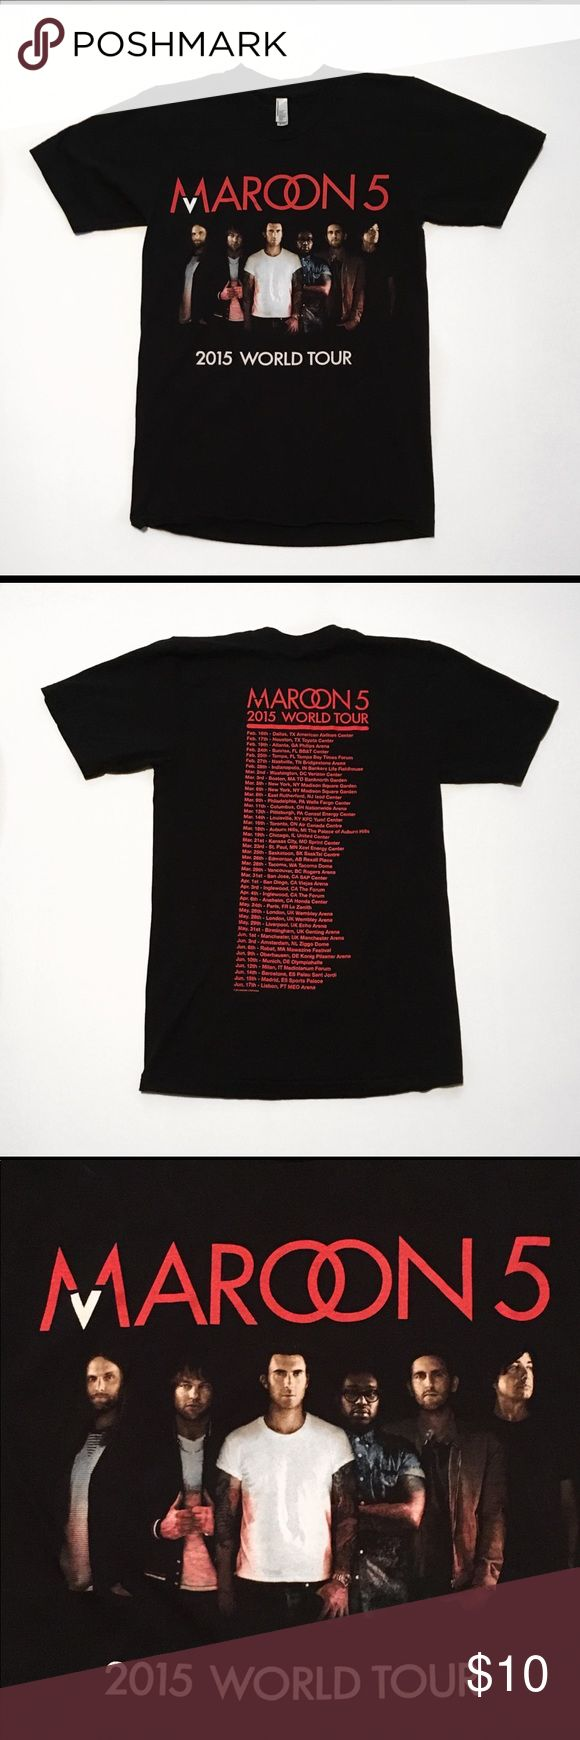 """Maroon 5 2005 World Tour Concert Shirt Small Maroon 5 """"2005 World Tour"""" Concert Graphic Screen Tee Adult Size Small With Fantastic Graphics On The Front And Back. In Great Used Condition With Great Color And No Tears Or Stains (Please See Photos).  Measurements: AP To AP-15"""" Length-26.5"""" American Apparel Shirts Tees - Short Sleeve"""